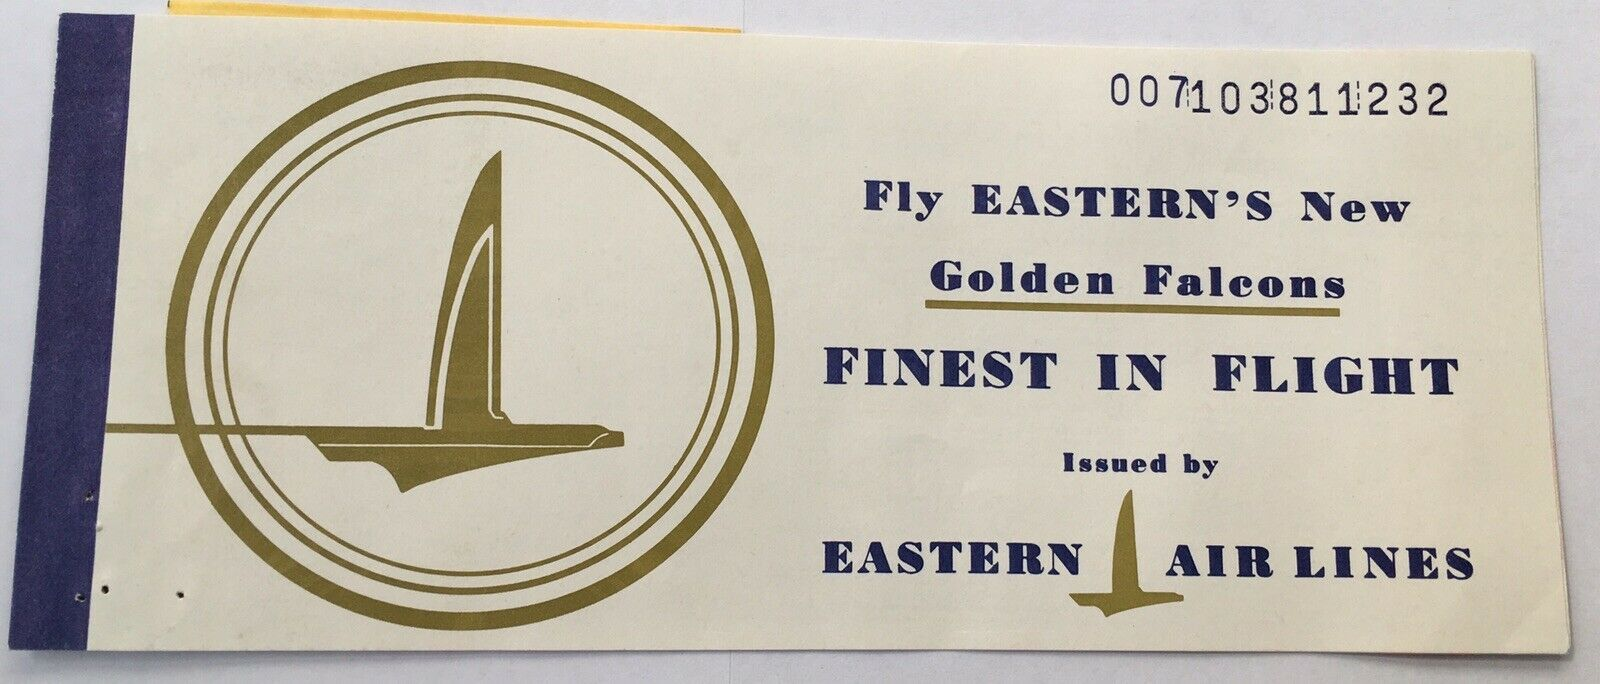 Vtg Eastern Airlines Golden Falcons Ticket From 1962